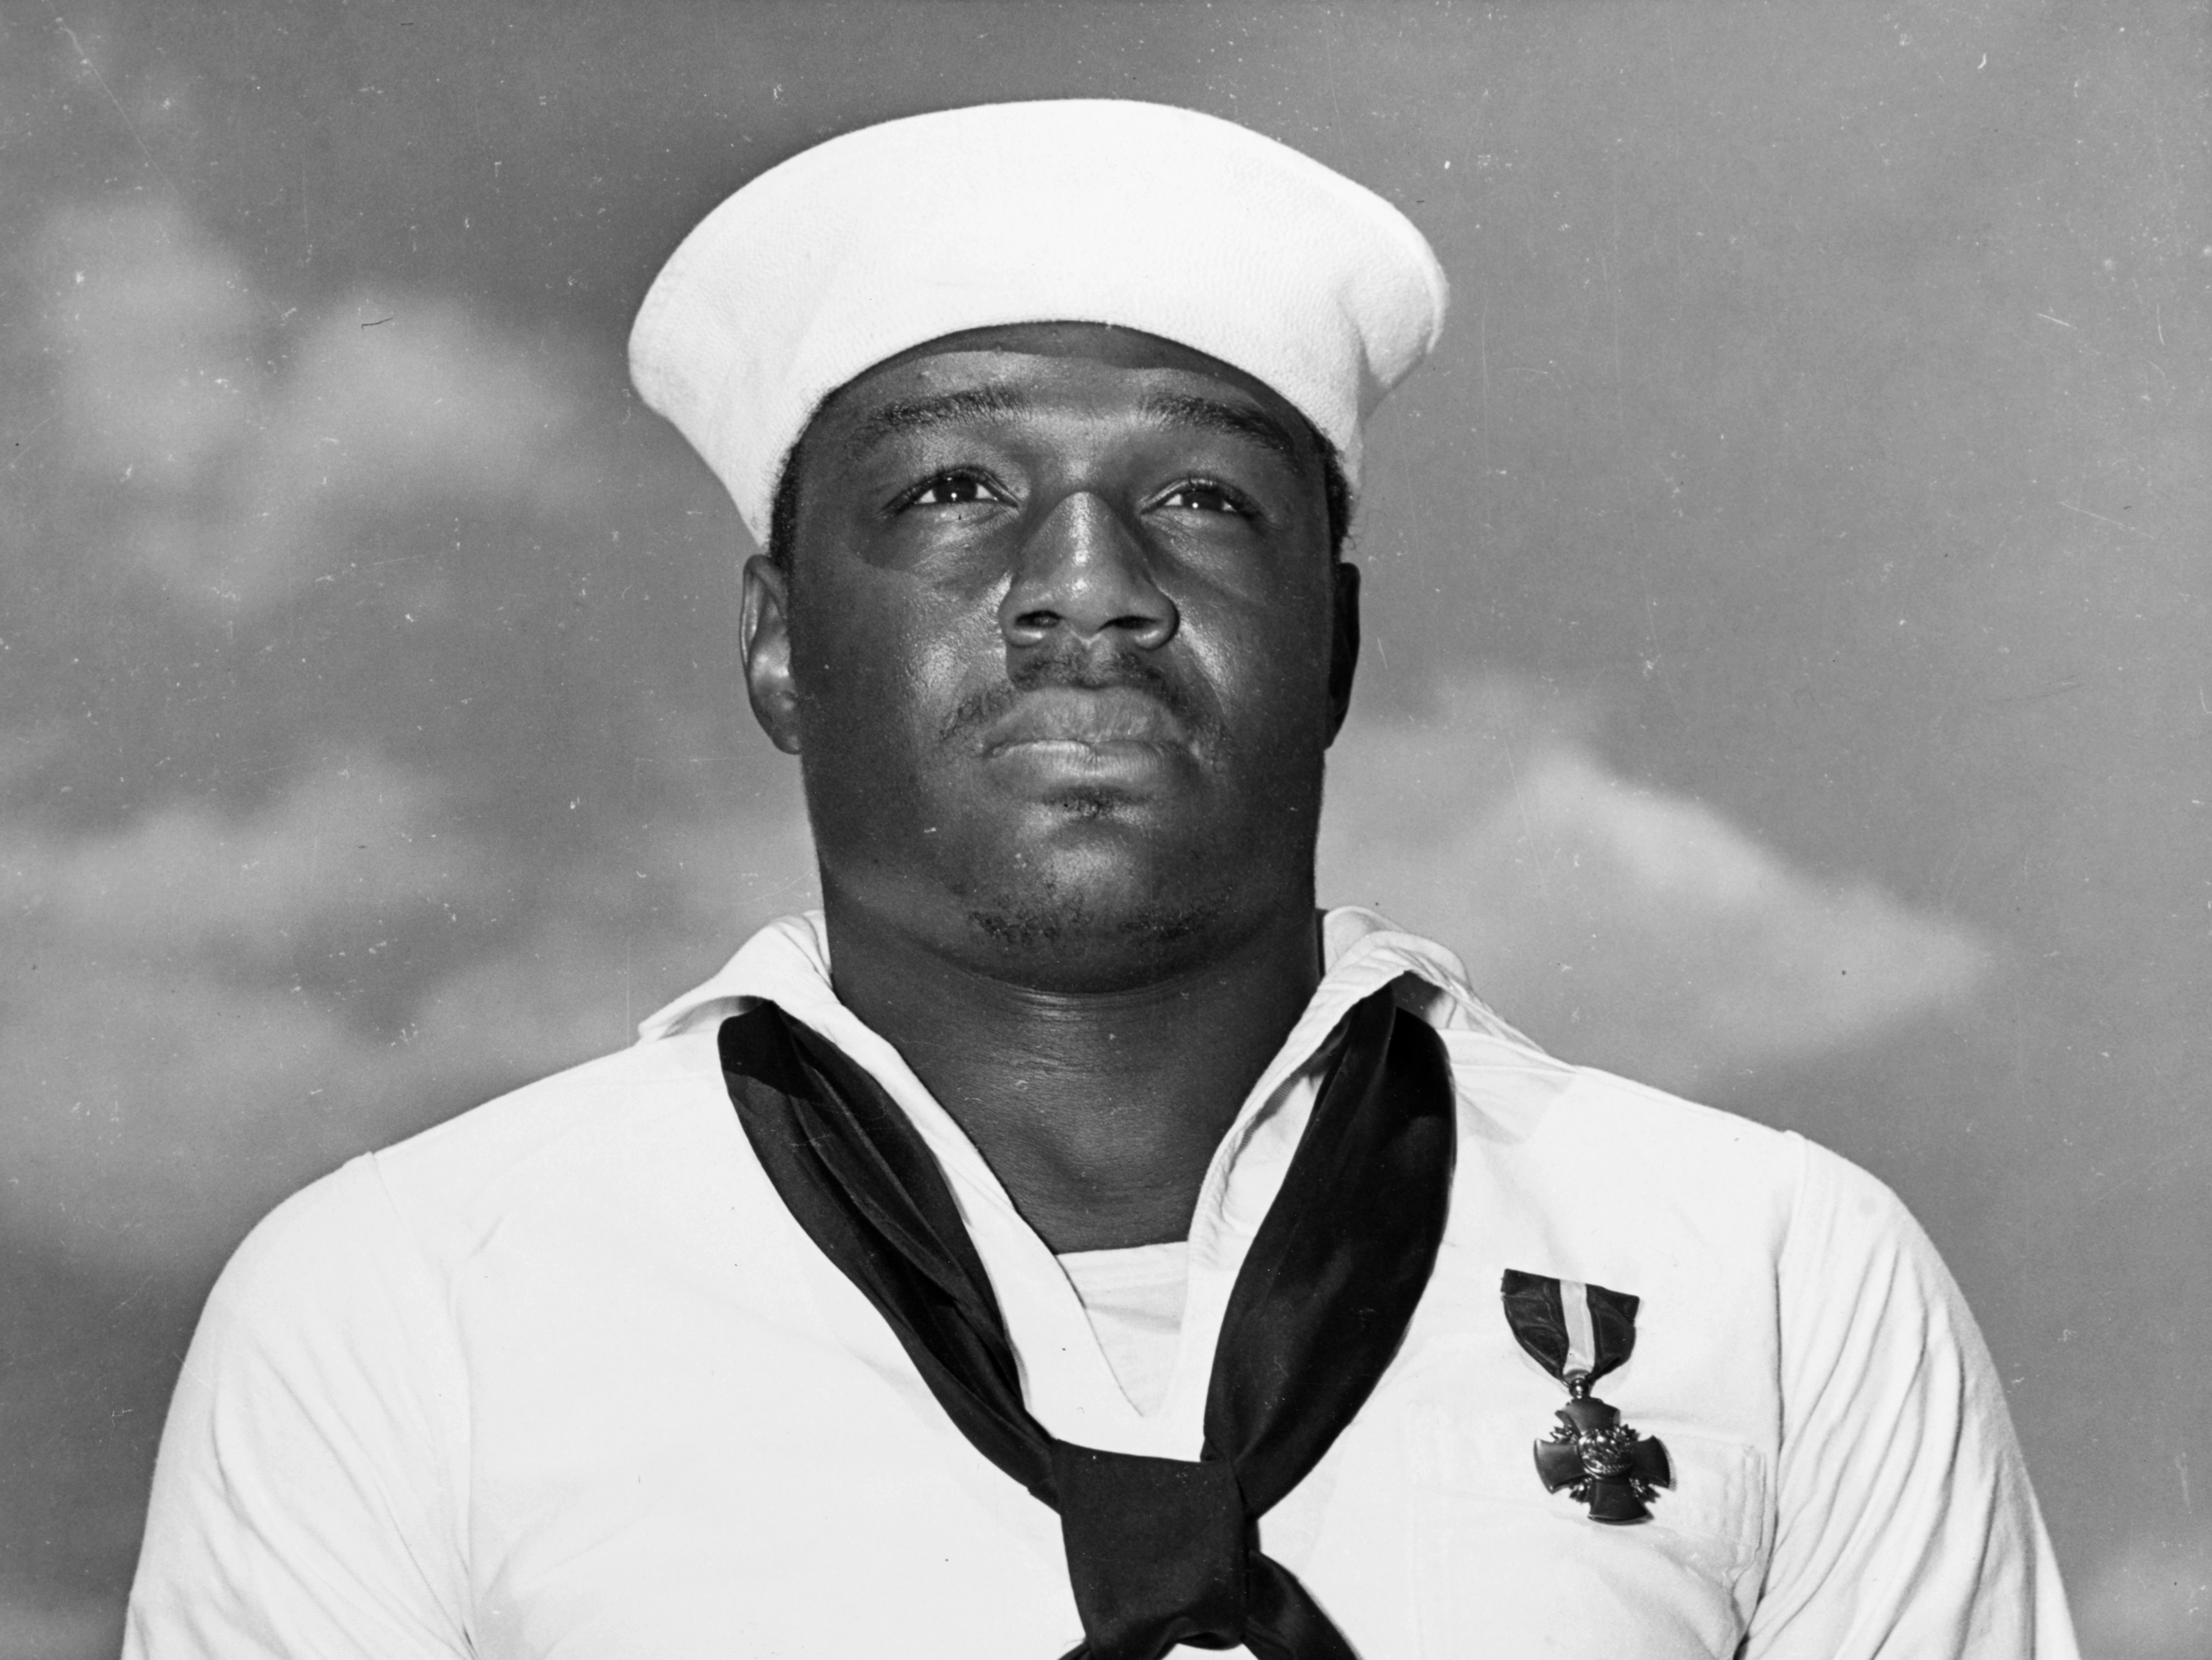 U.S. Navy To Name Aircraft Carrier After WWII Hero Doris Miller